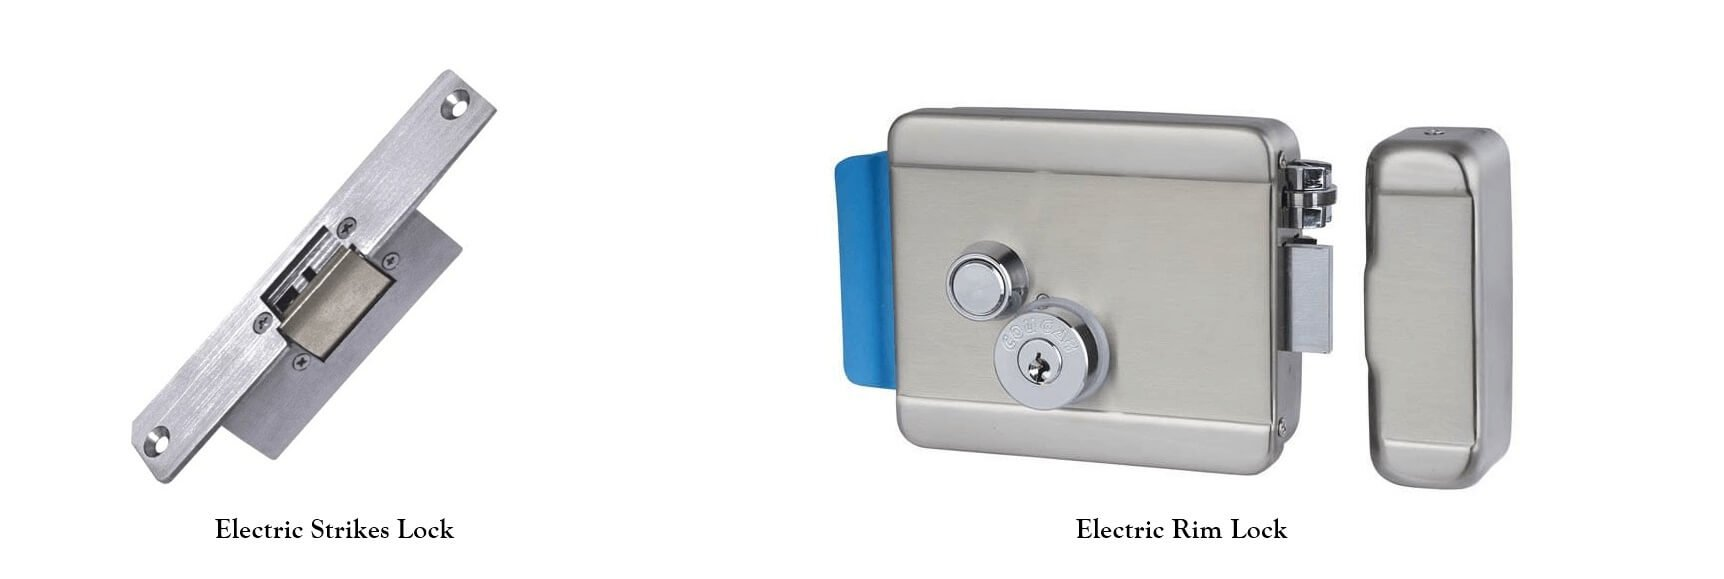 electric rim lock and electric strike lock - Why electric rim lock and electric strike lock are not suggested to use on access system?